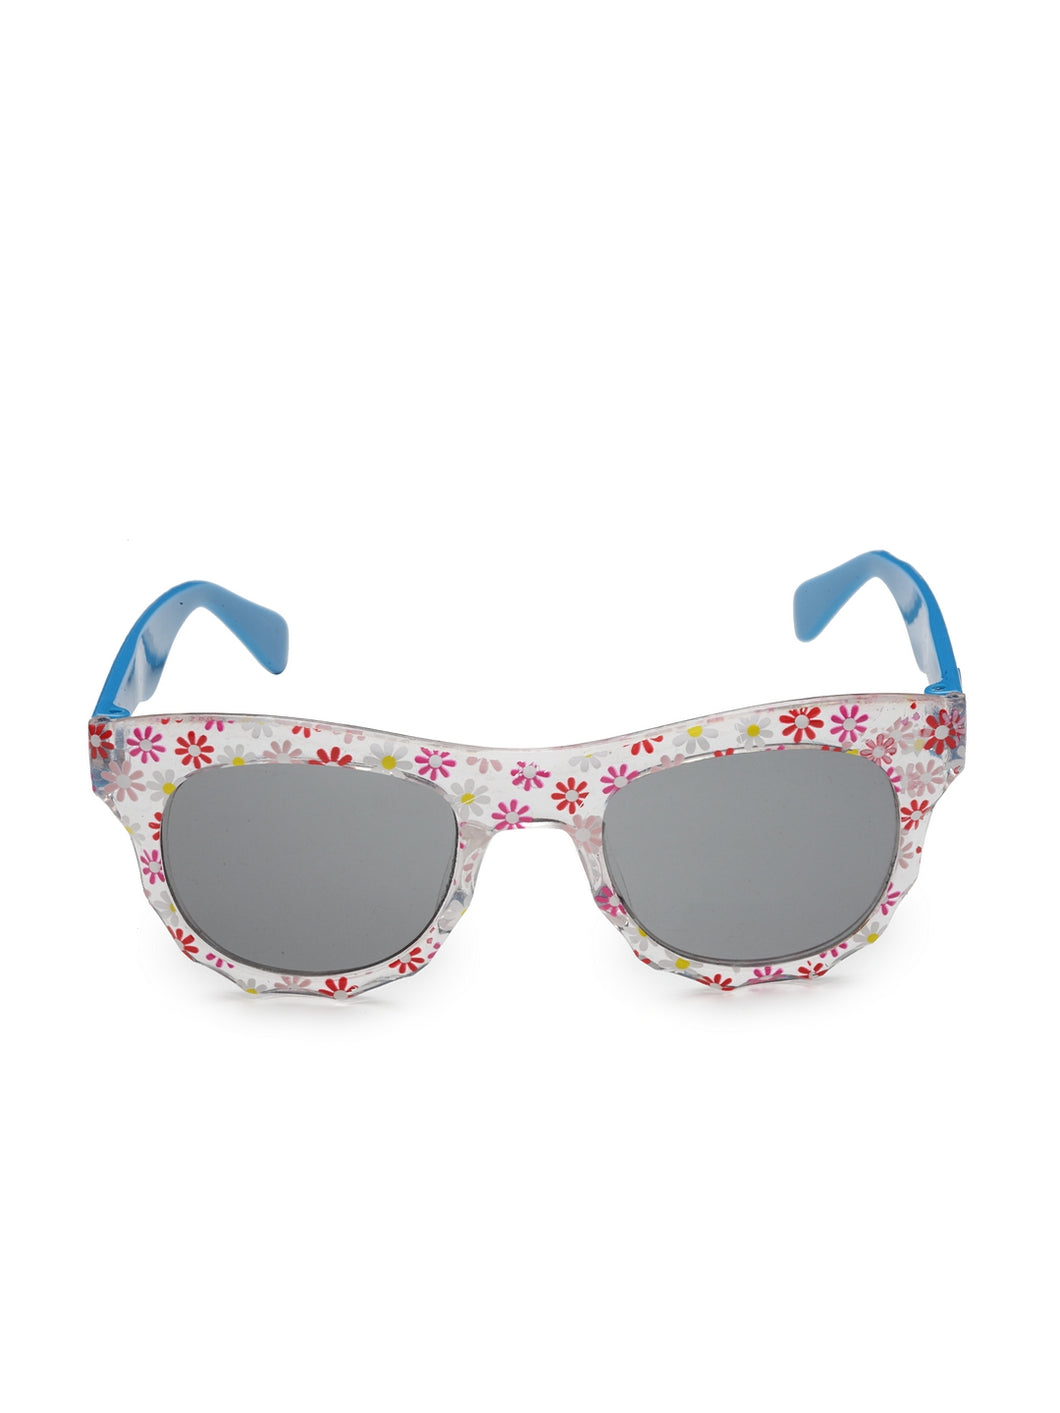 Stol'n Kids Yellow and Blue Bow Applique Rectangular Sunglasses Green and Pink